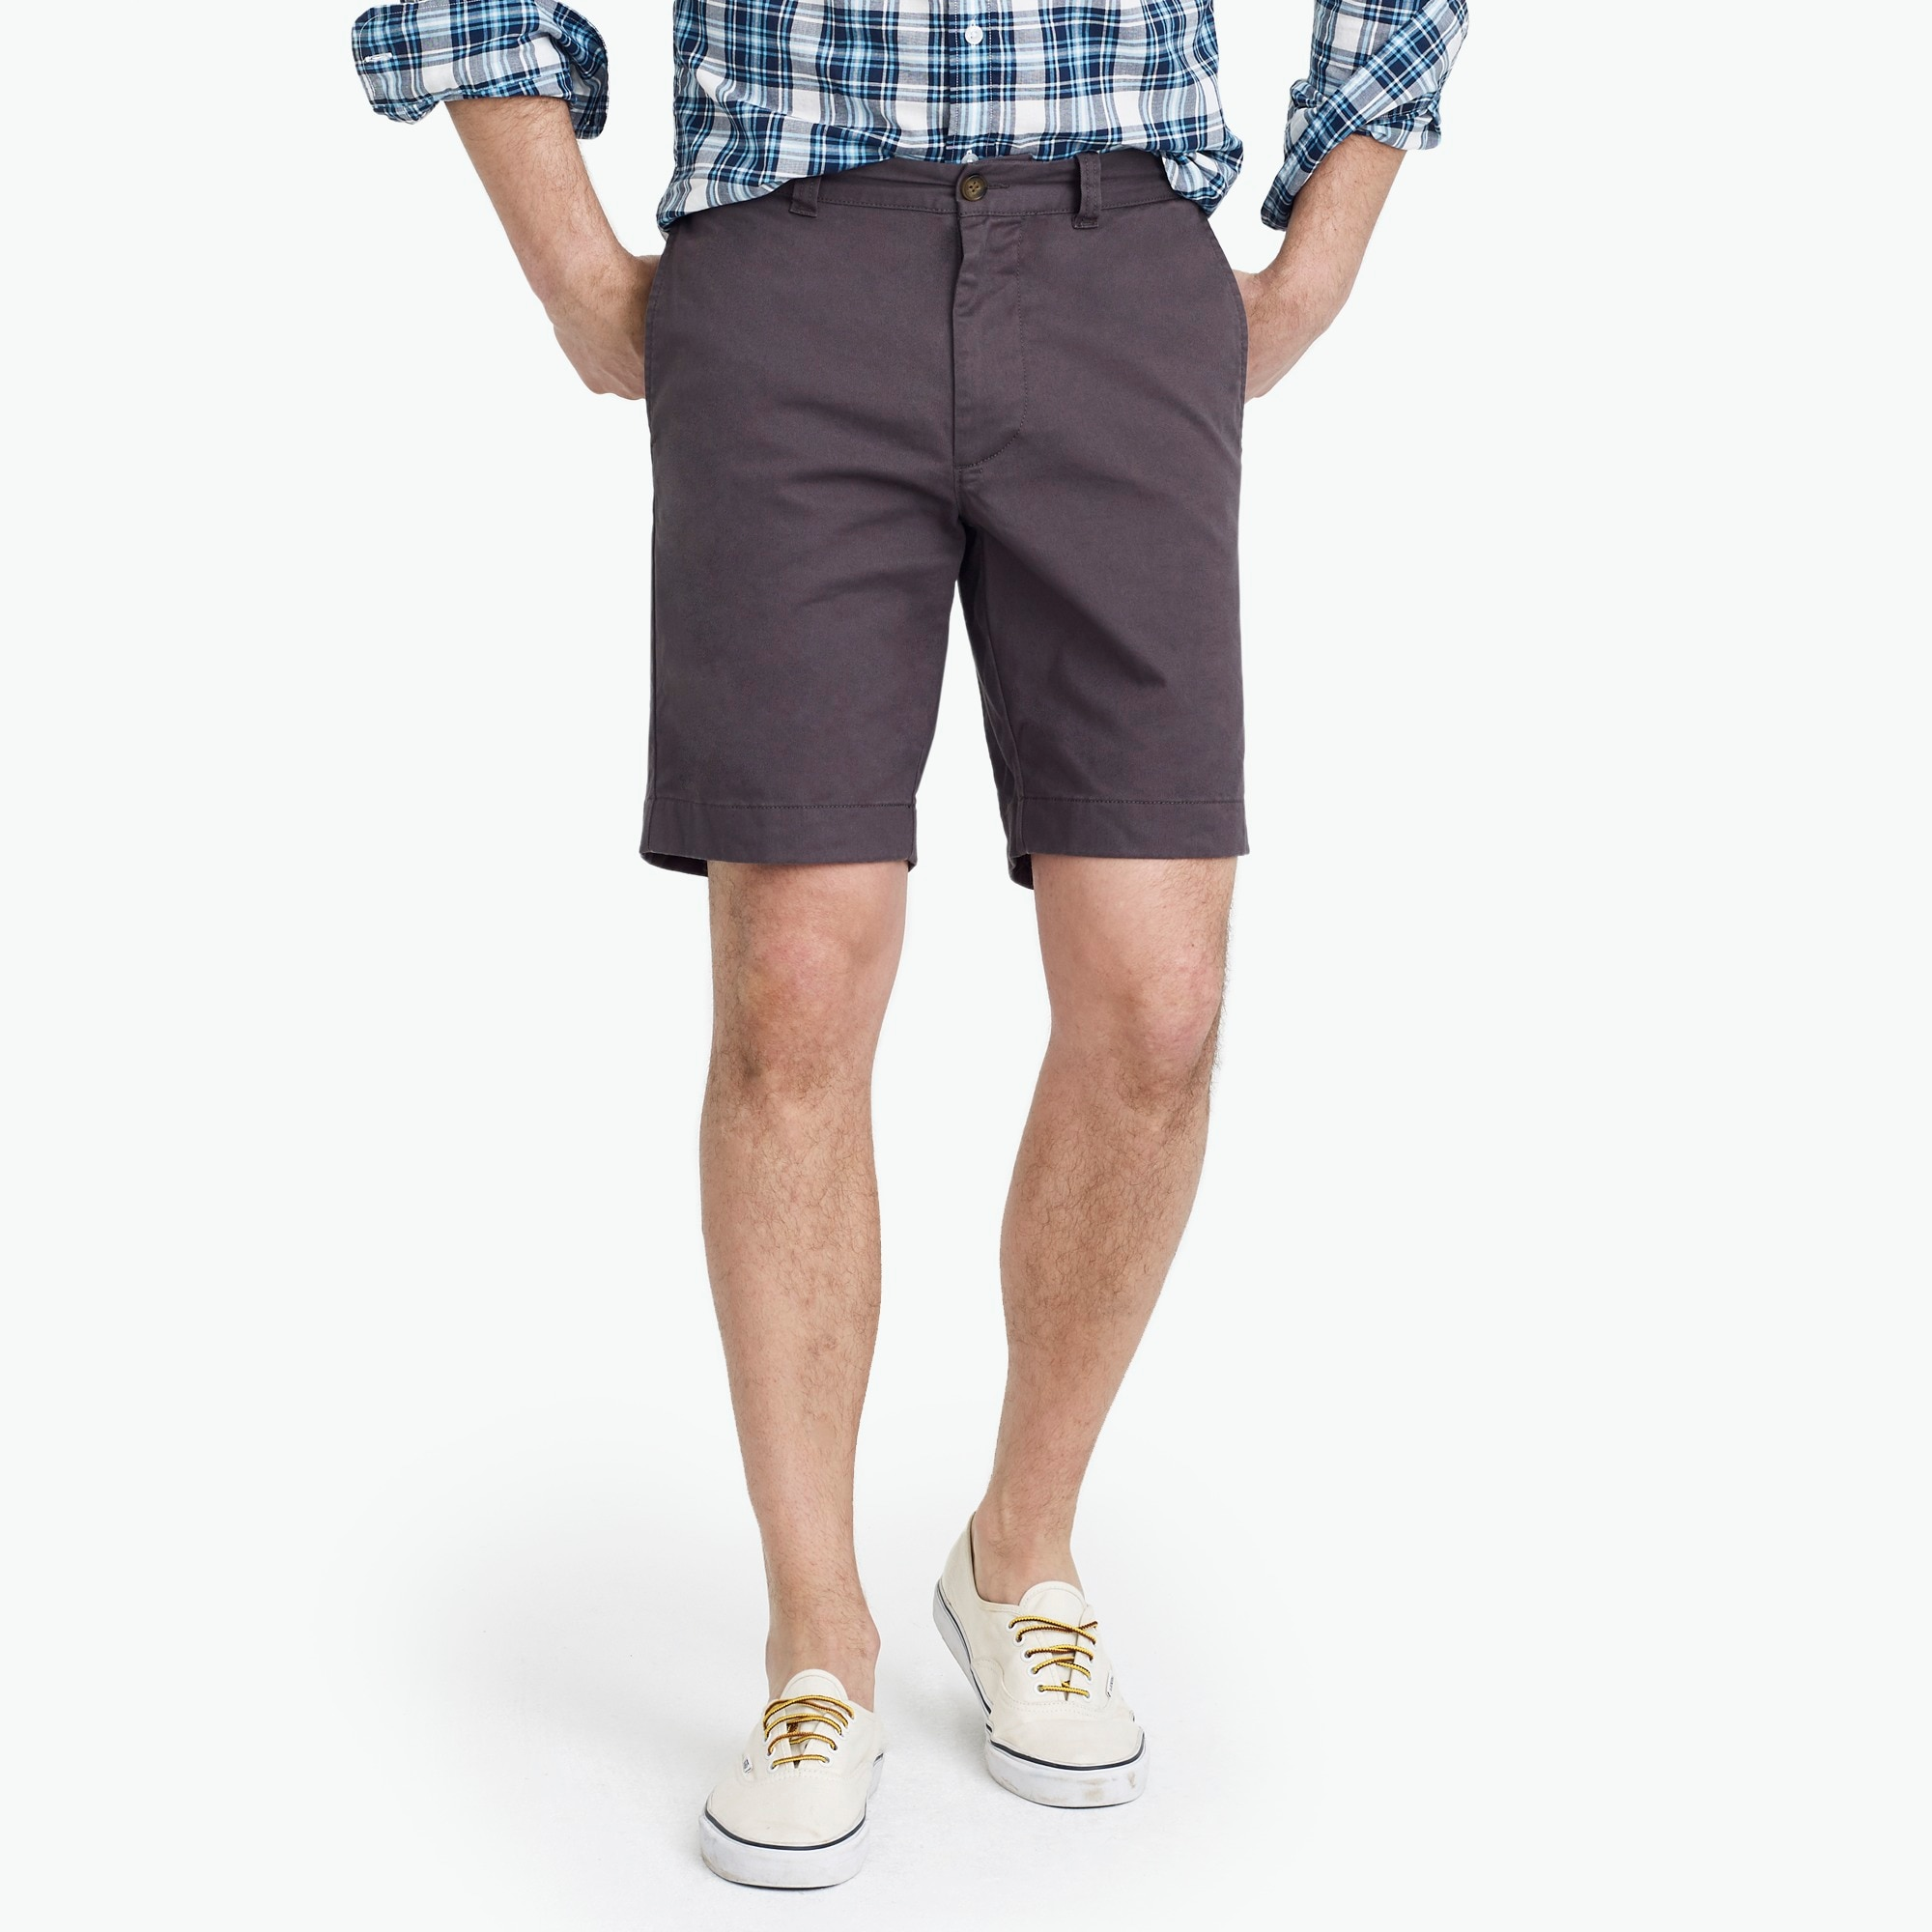 "9"" Gramercy flex chino short factorymen shorts c"